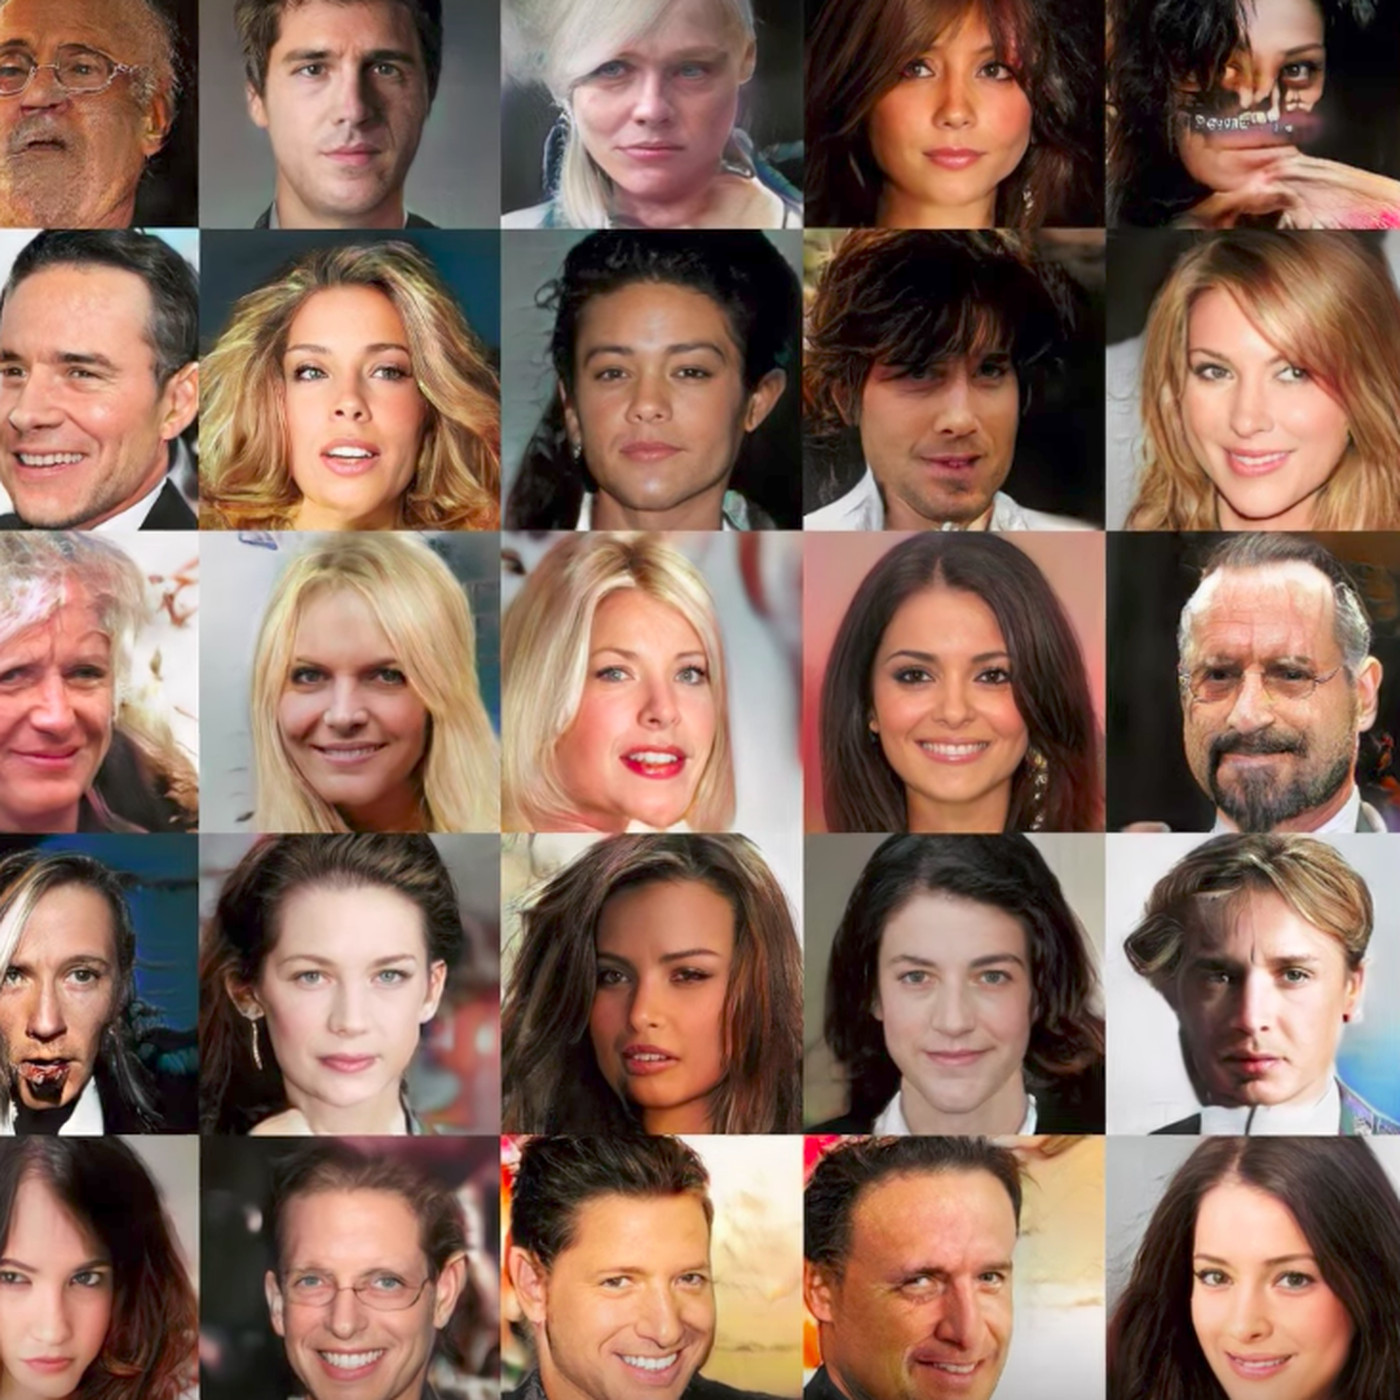 All of these faces are fake celebrities spawned by AI - The